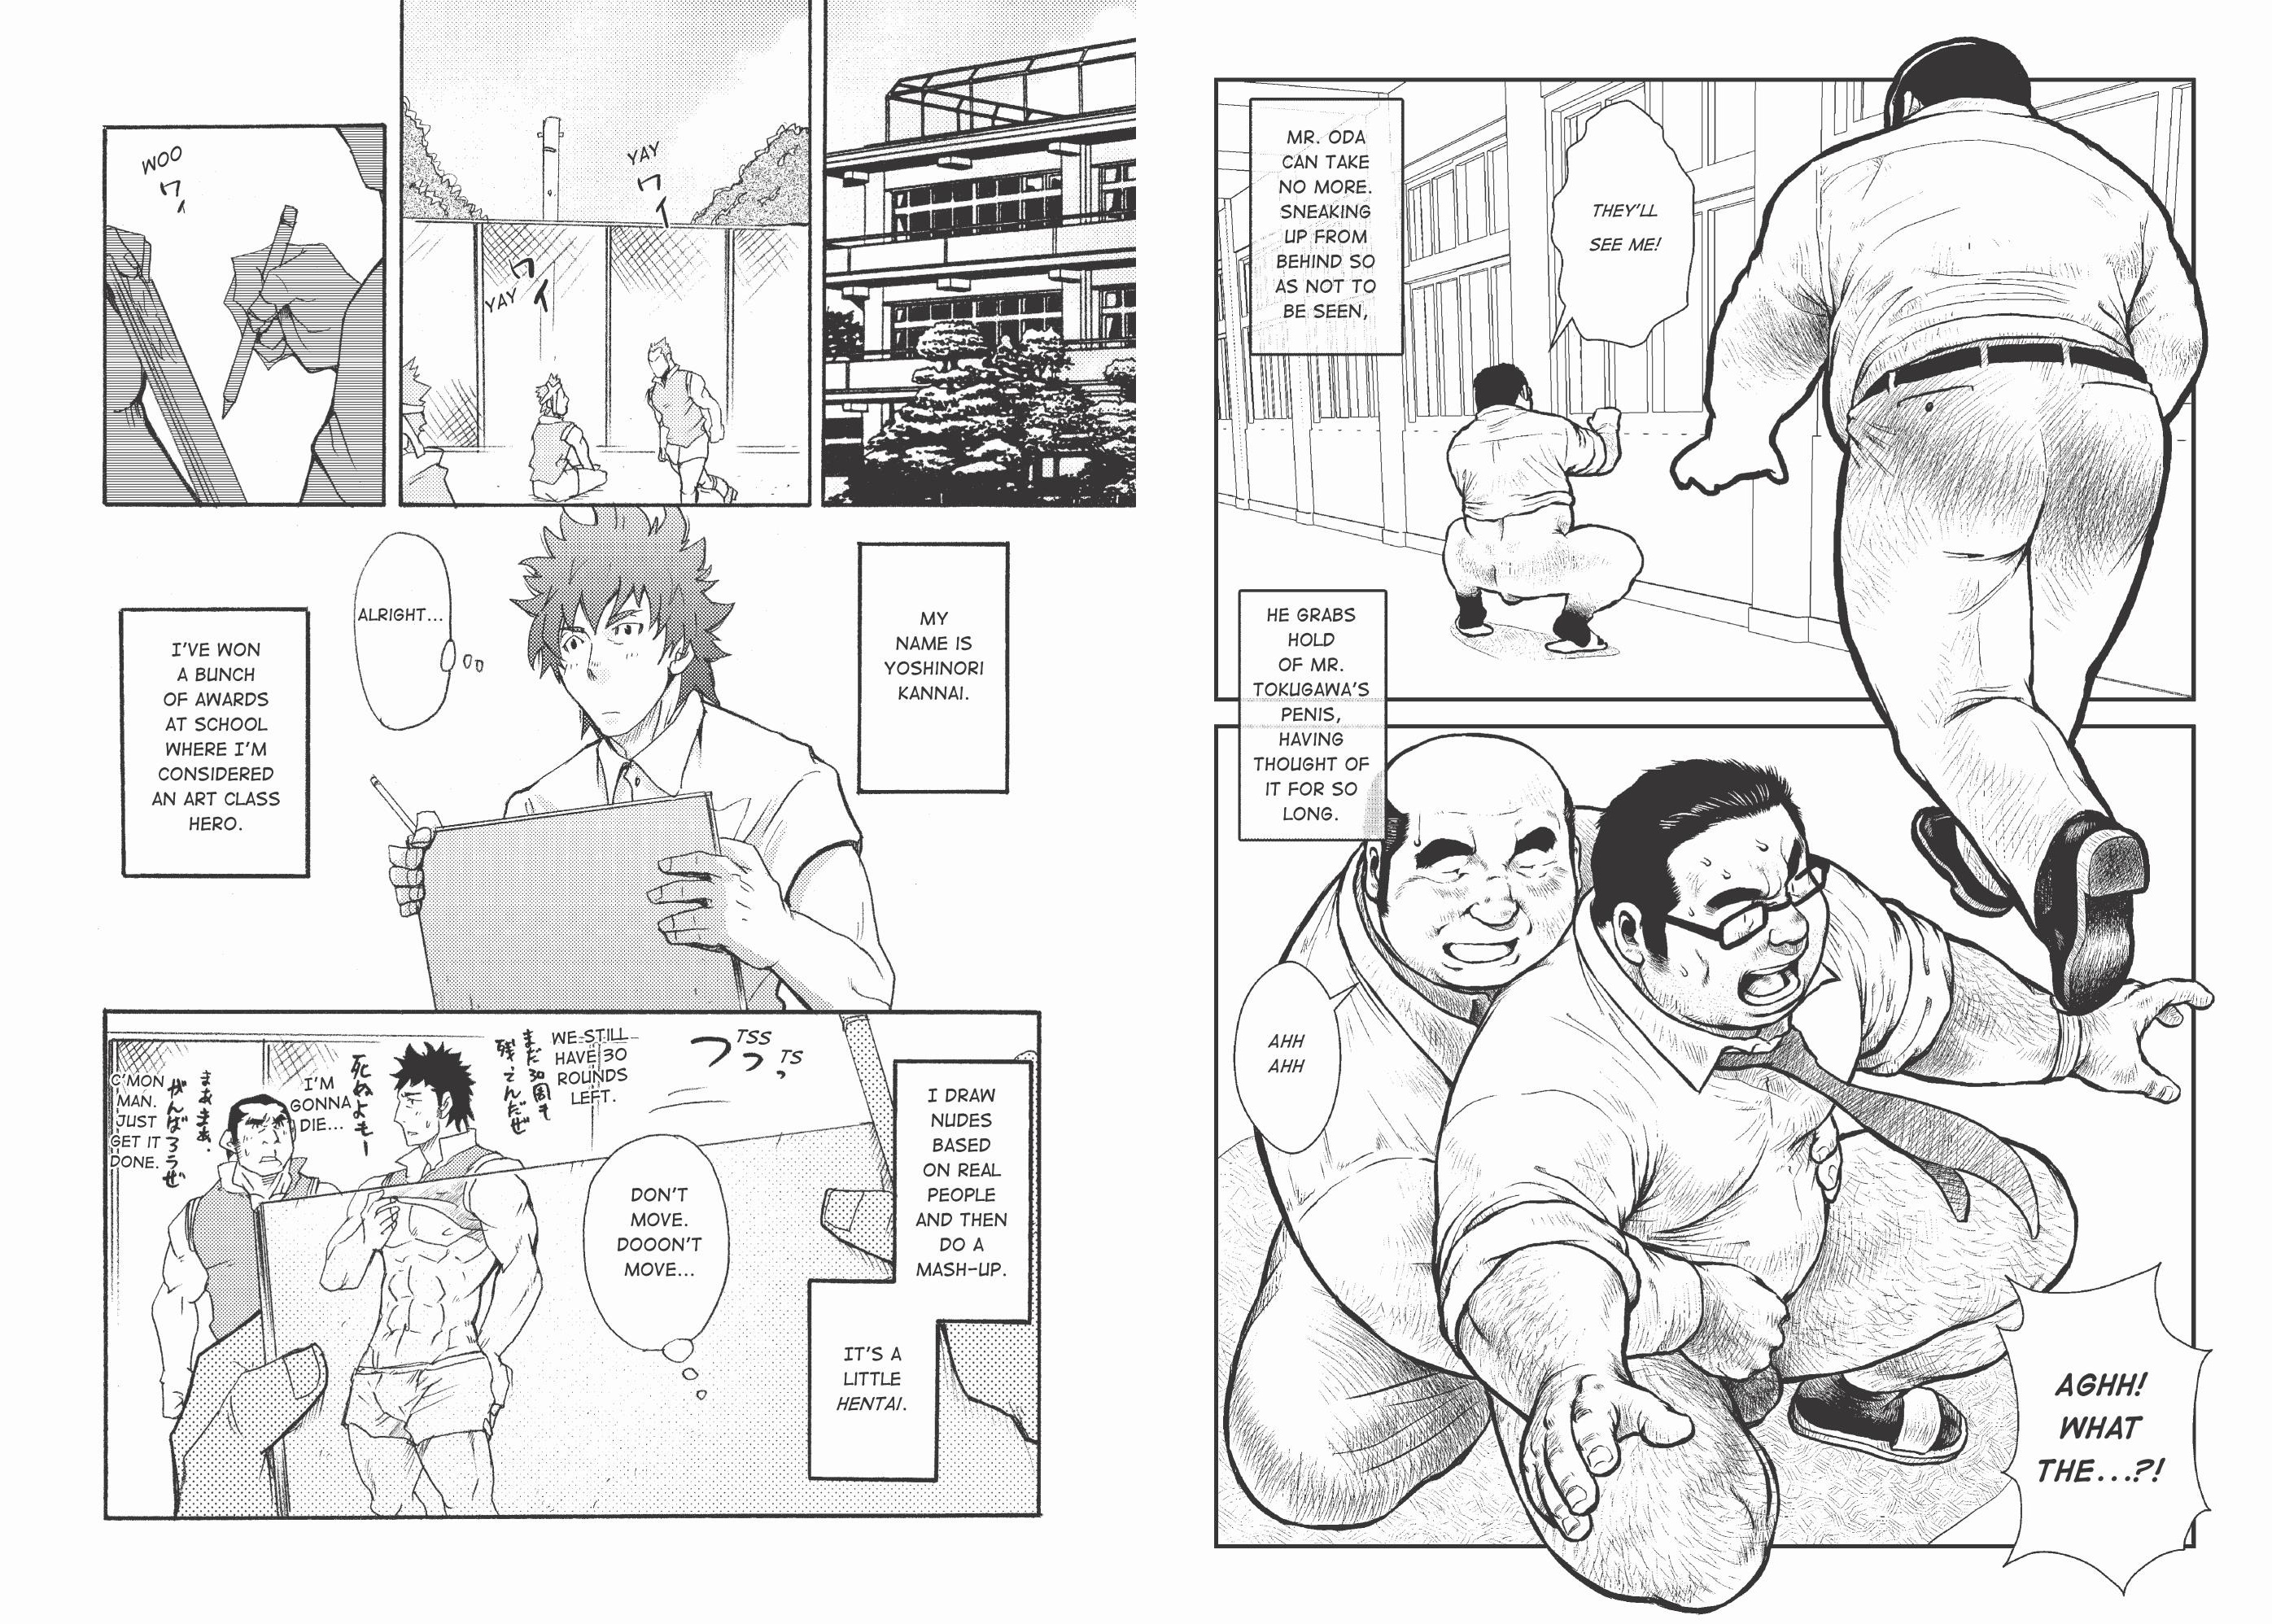 Massive Gay Erotic Manga review